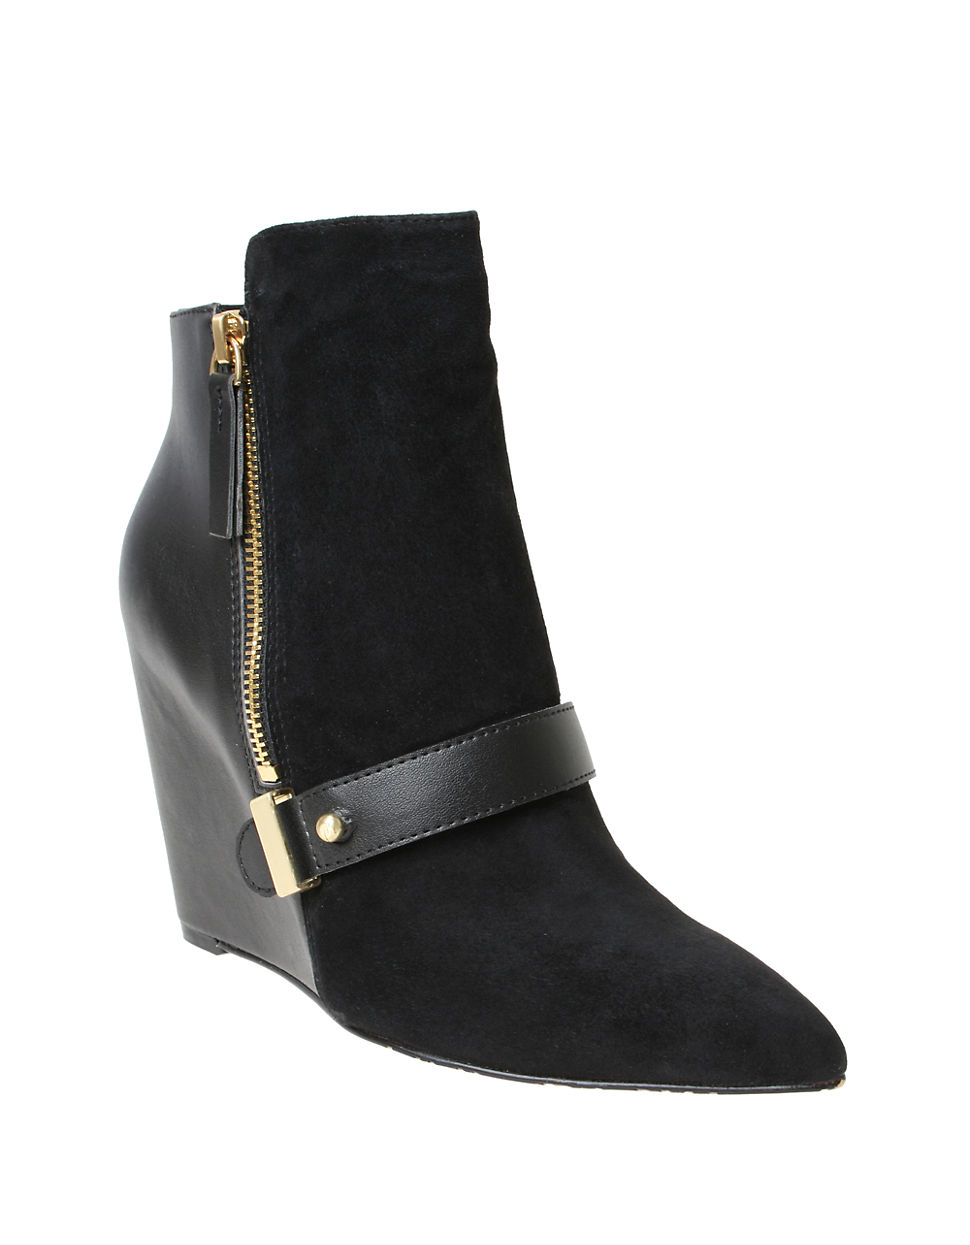 Women's Booties. Naturalizer honors the brand's original promise to deliver feminine, stylish and comfortable shoes for the modern woman. Our collection of dress and casual booties for women is .